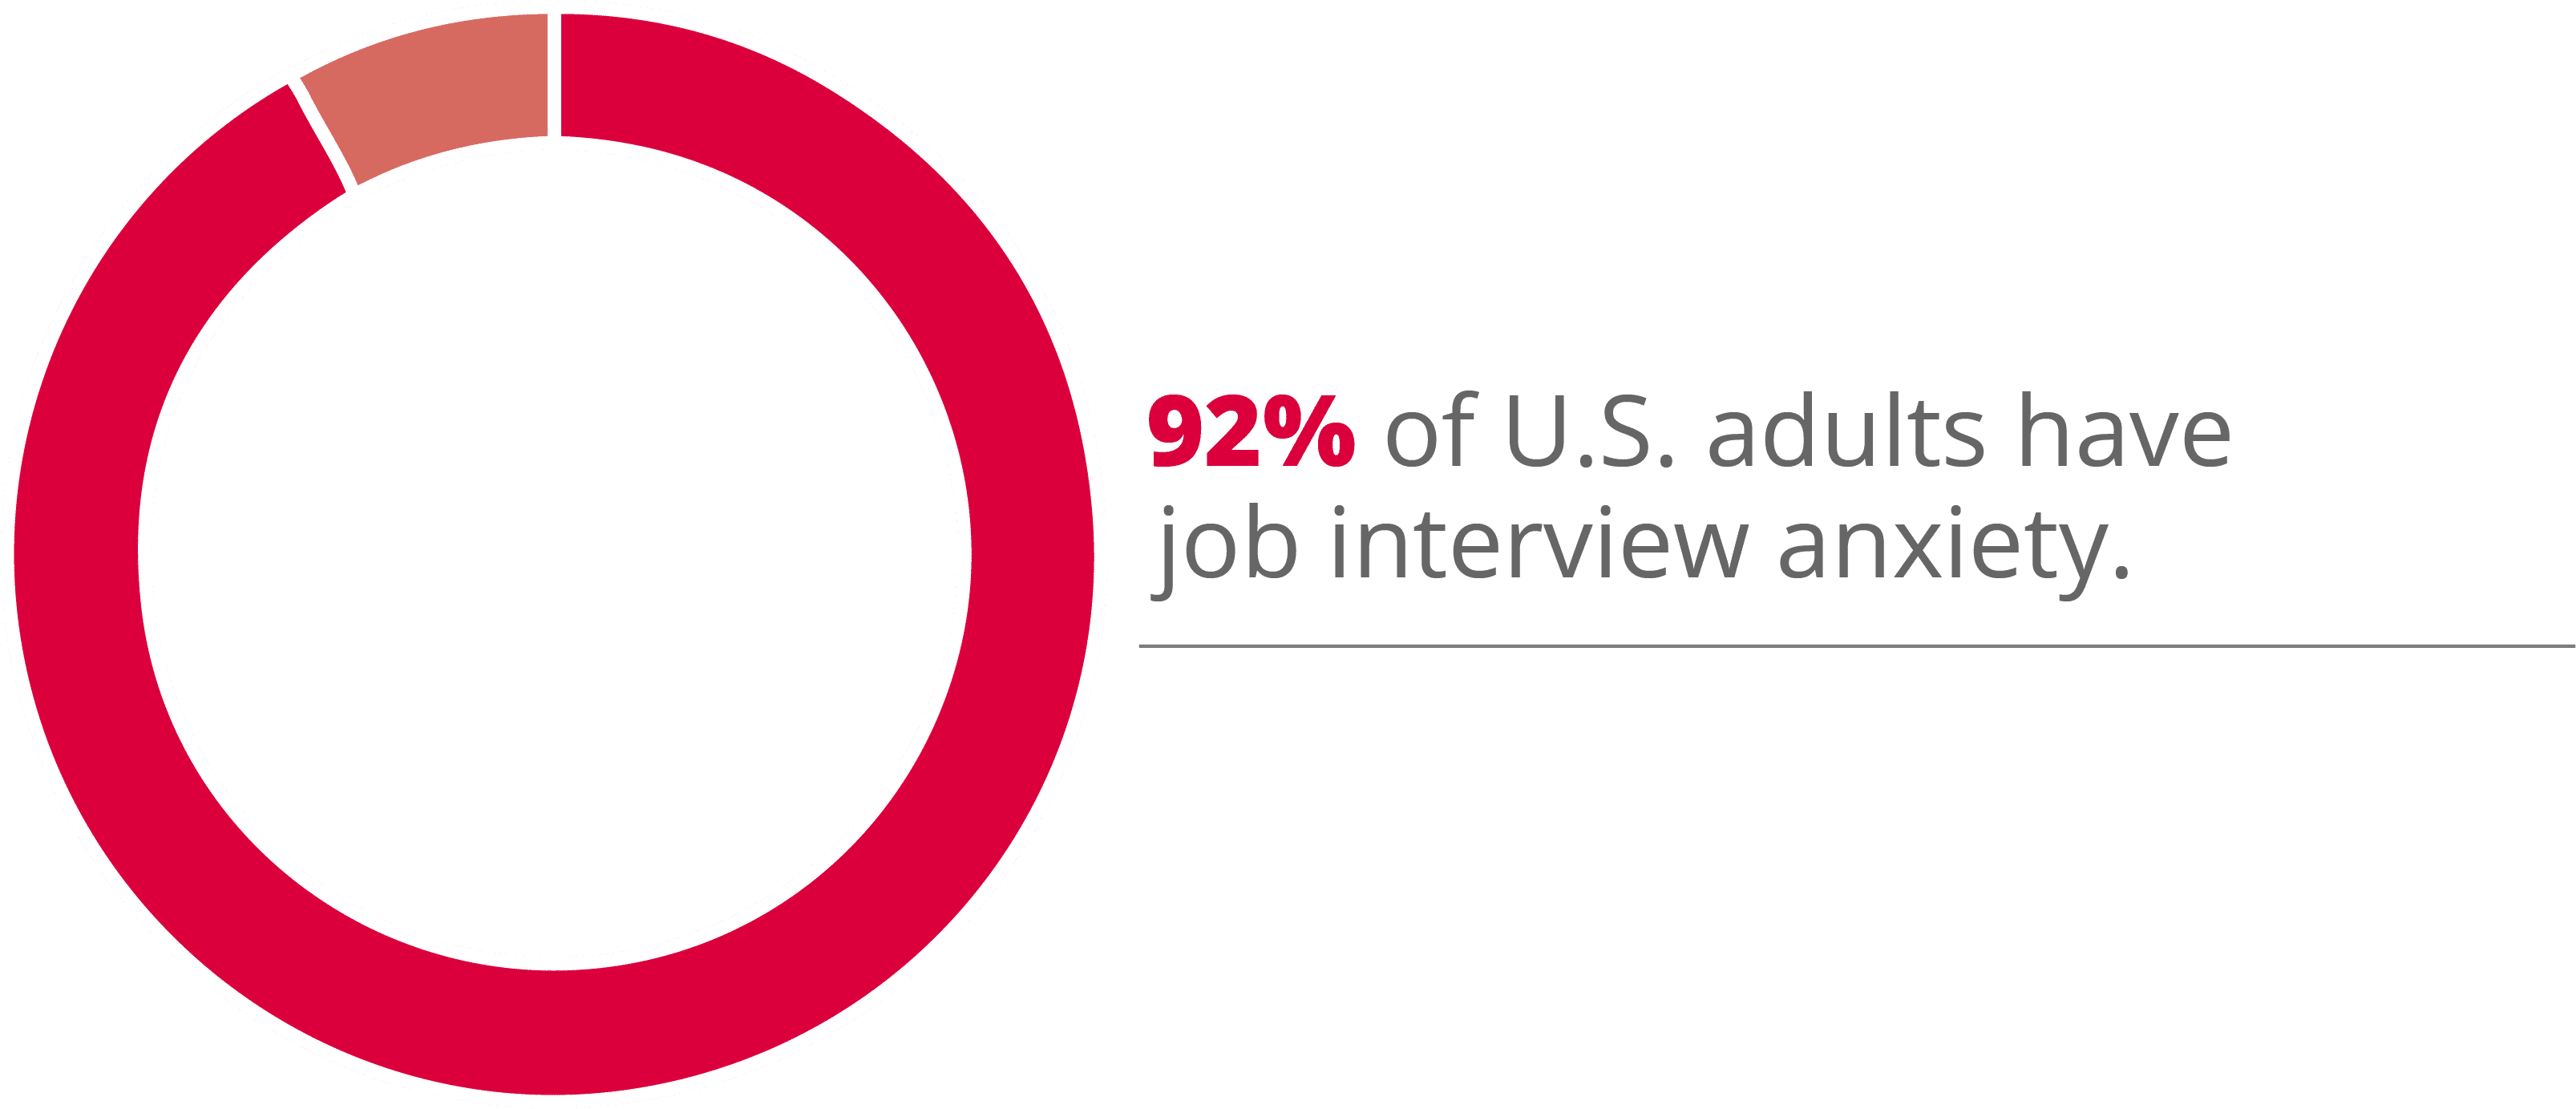 92% of Americans experience job interview anxiety